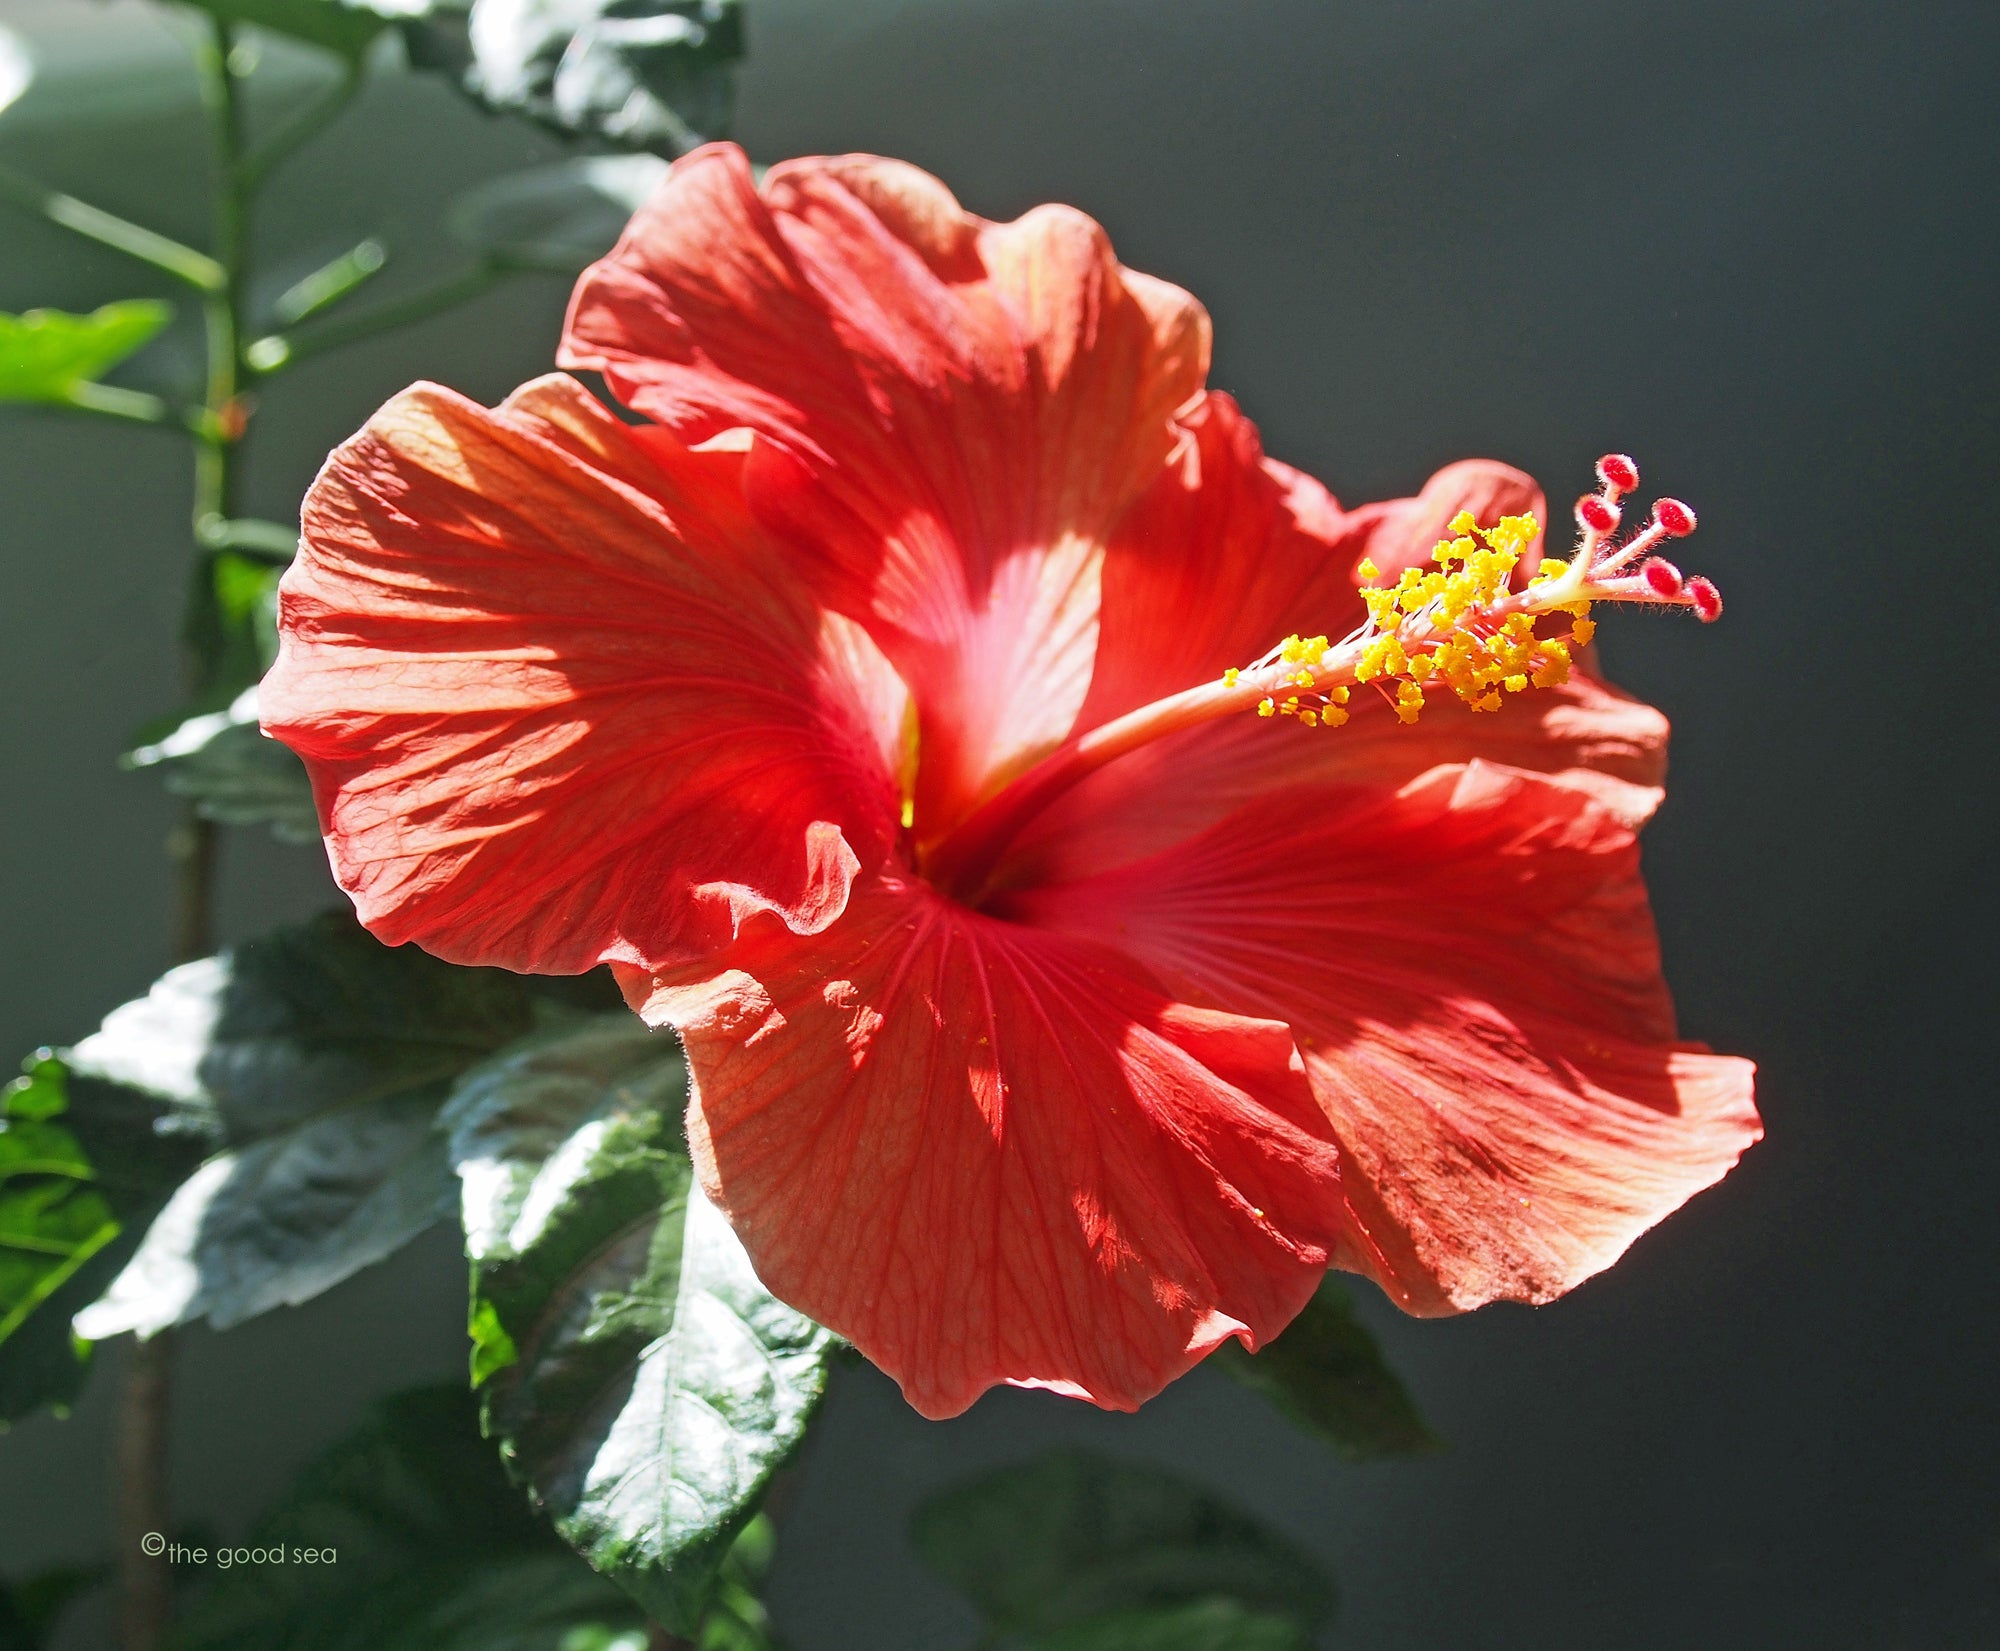 Red Hibiscus Flower Full Beauty Photo Art Wall Print Matted